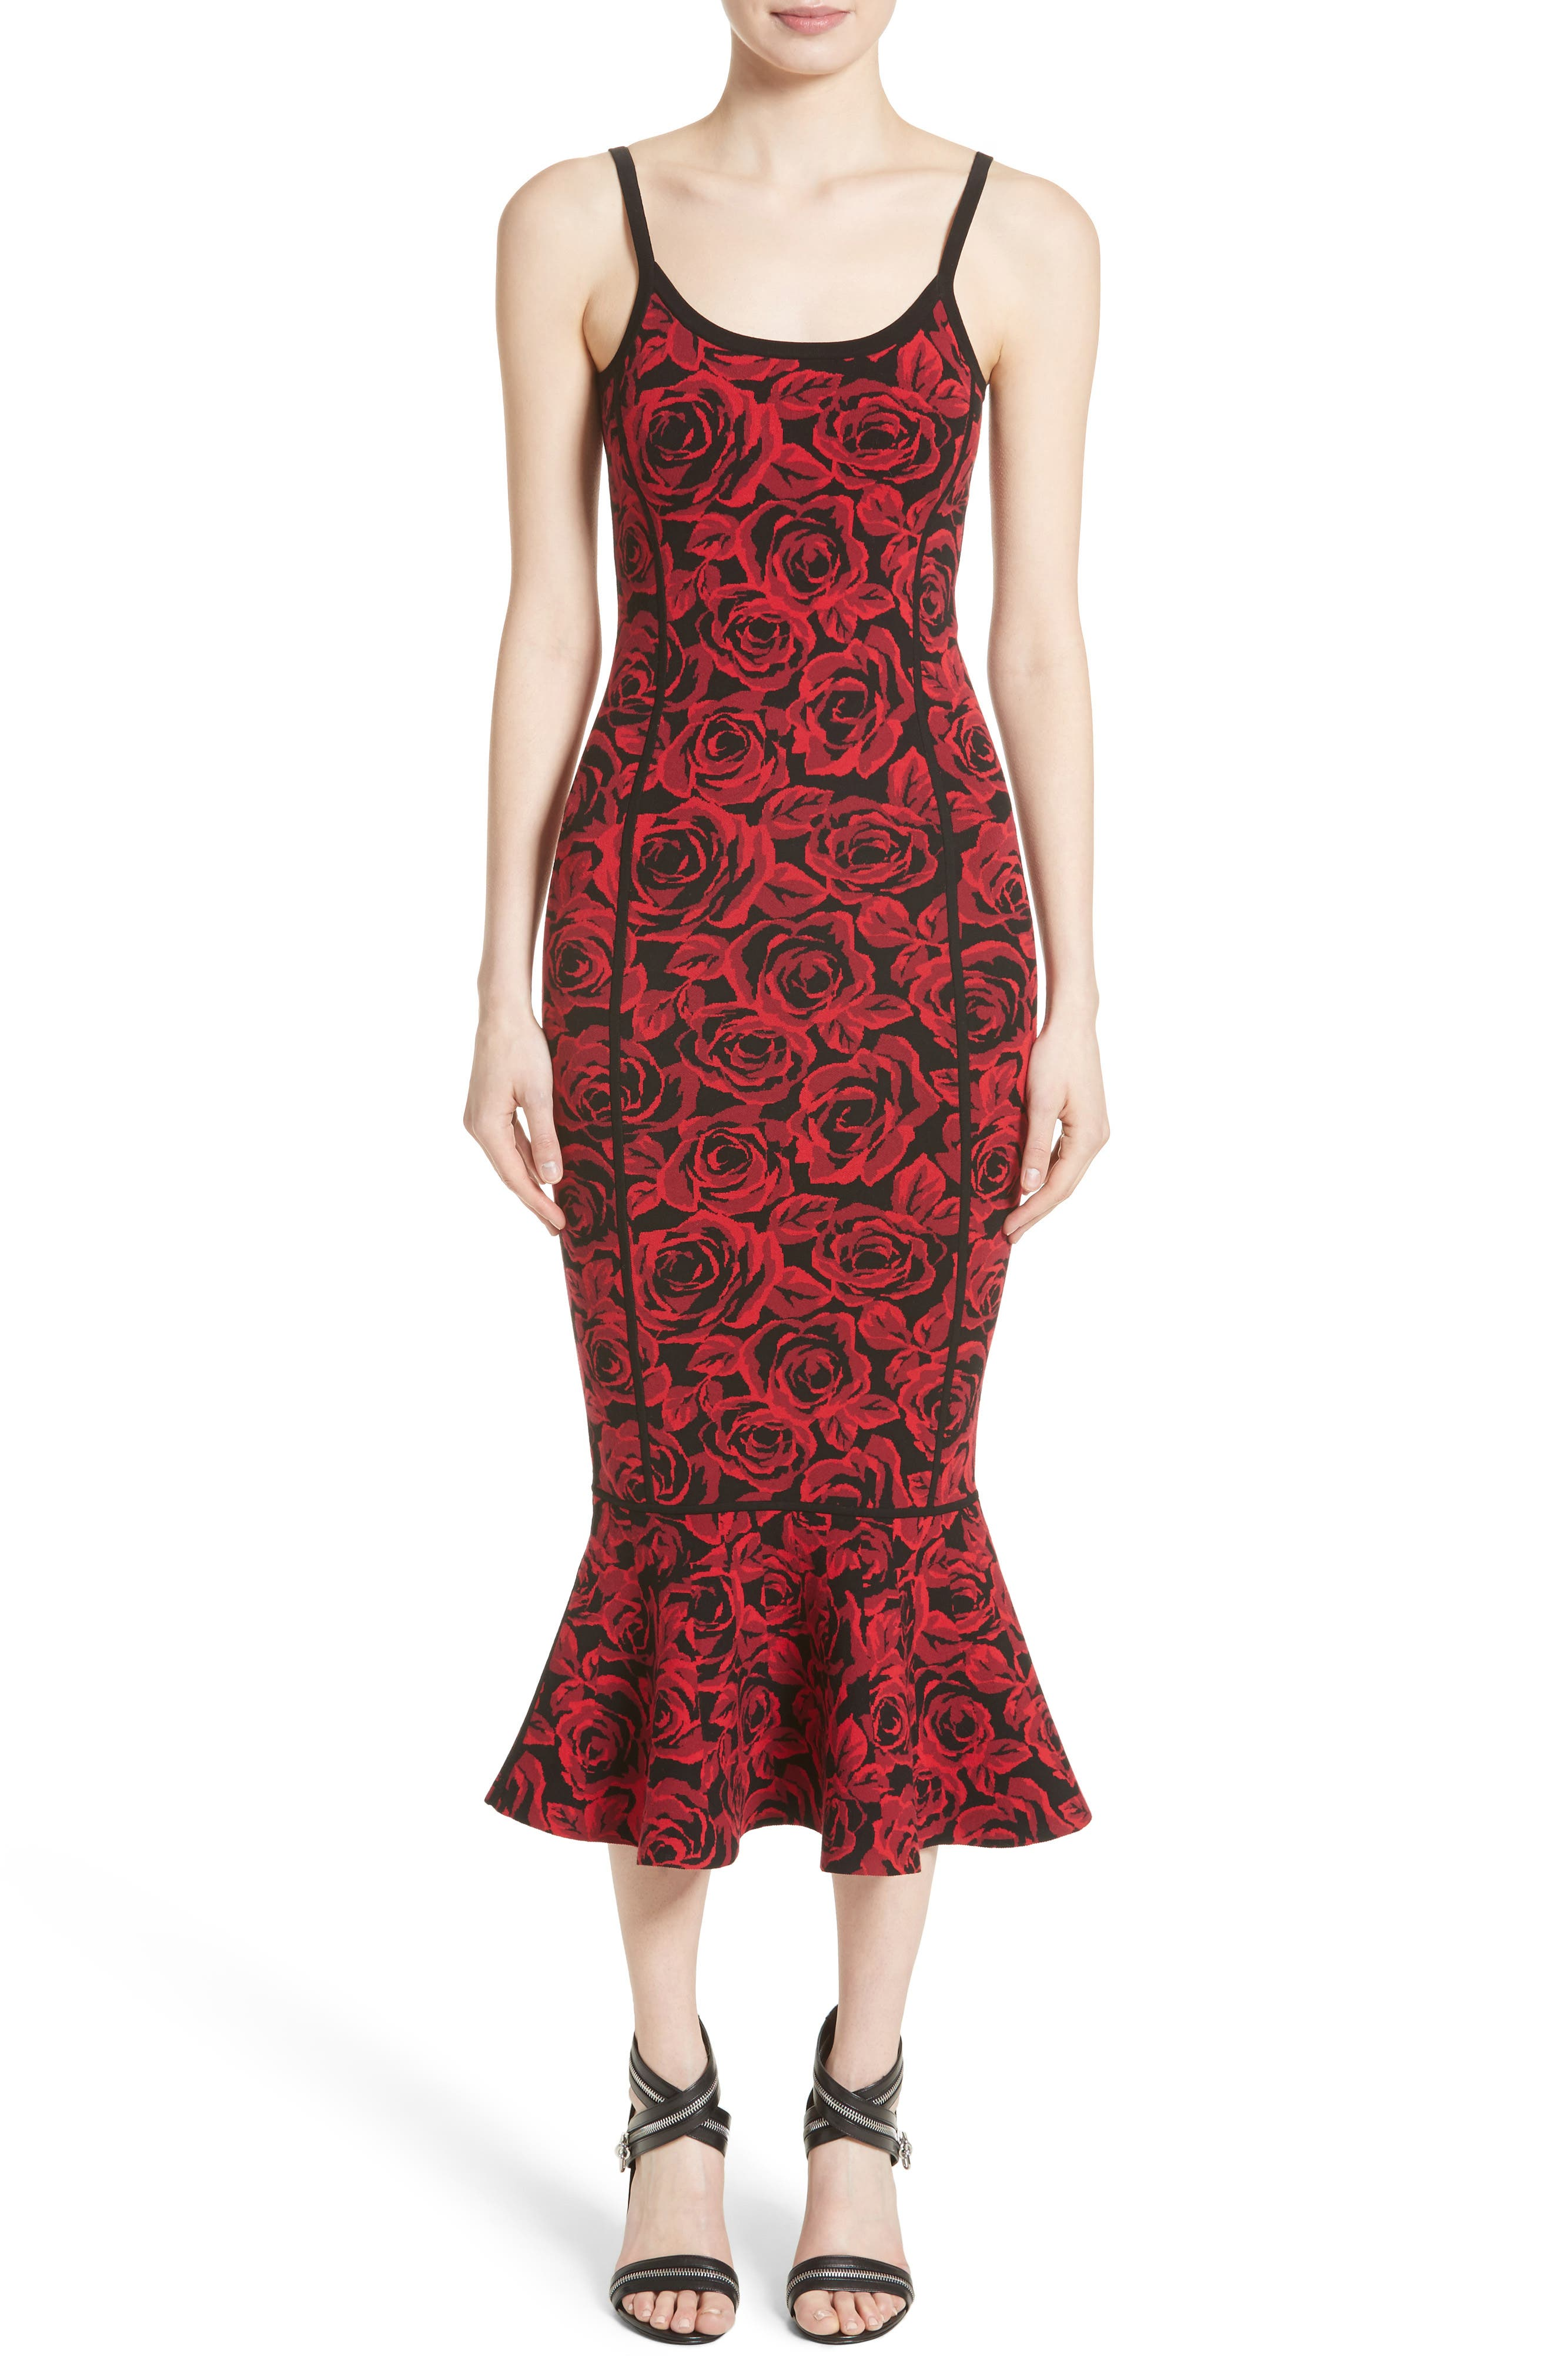 0a48fa0d003717 michael kors red lace dress sale > OFF57% Discounted